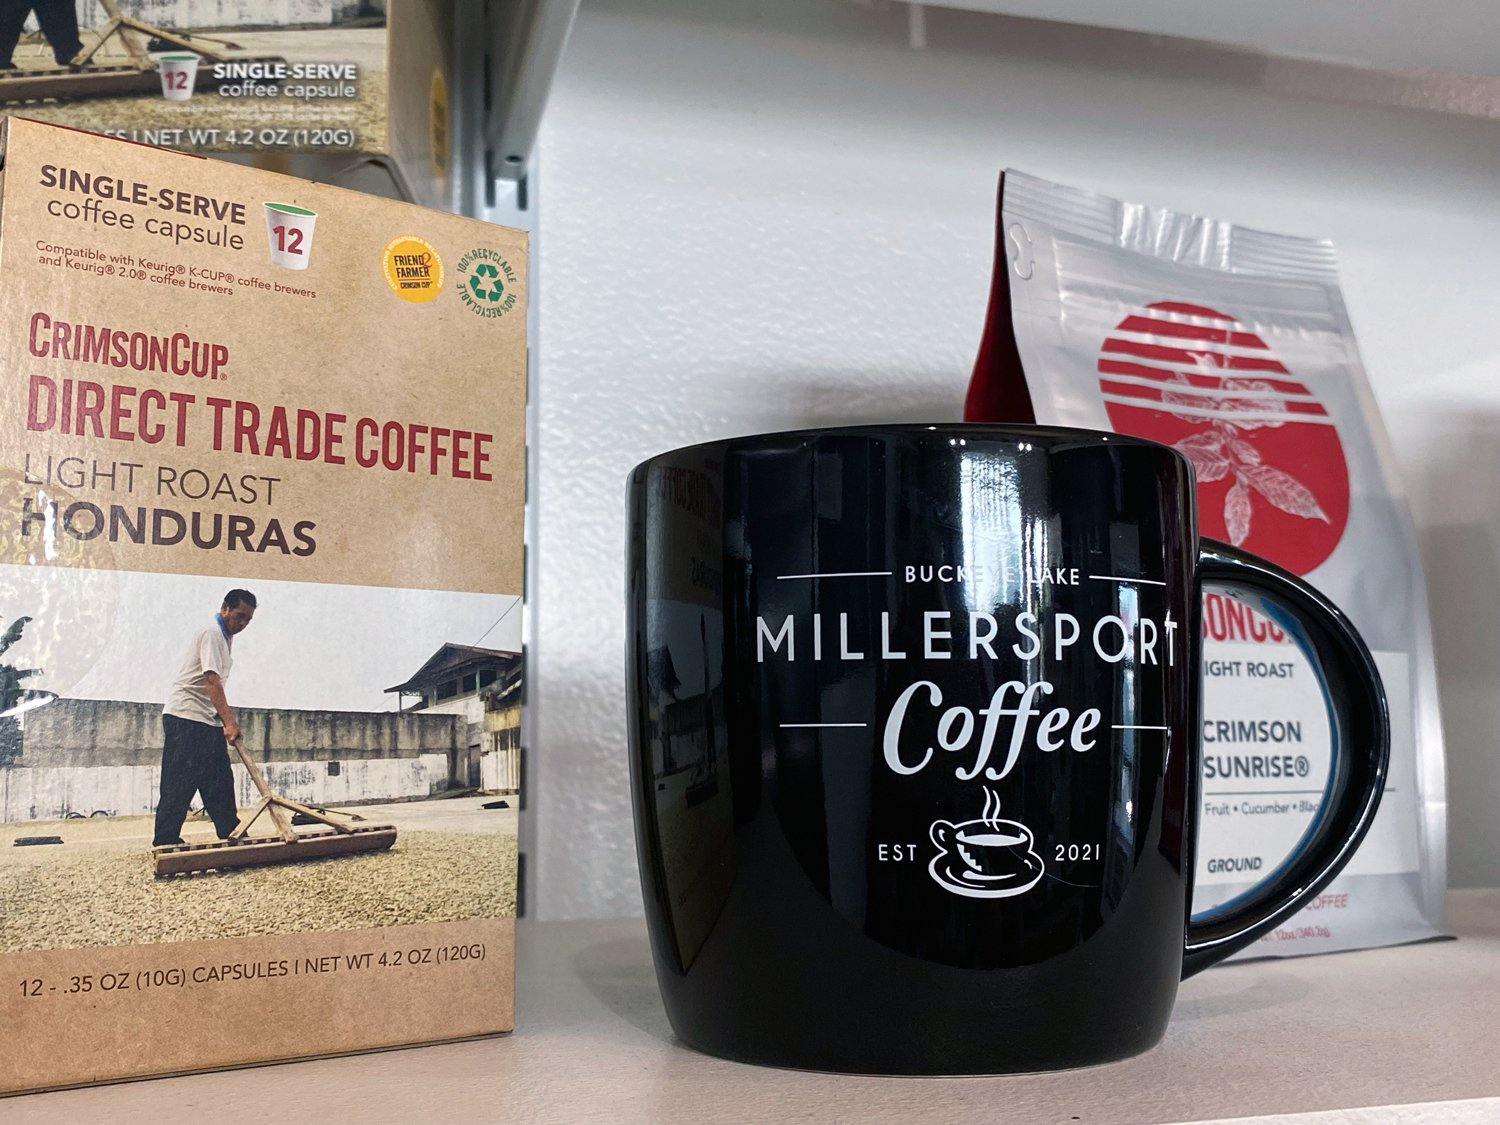 Couple Opens Second Independent Coffee Shop in Millersport, Ohio